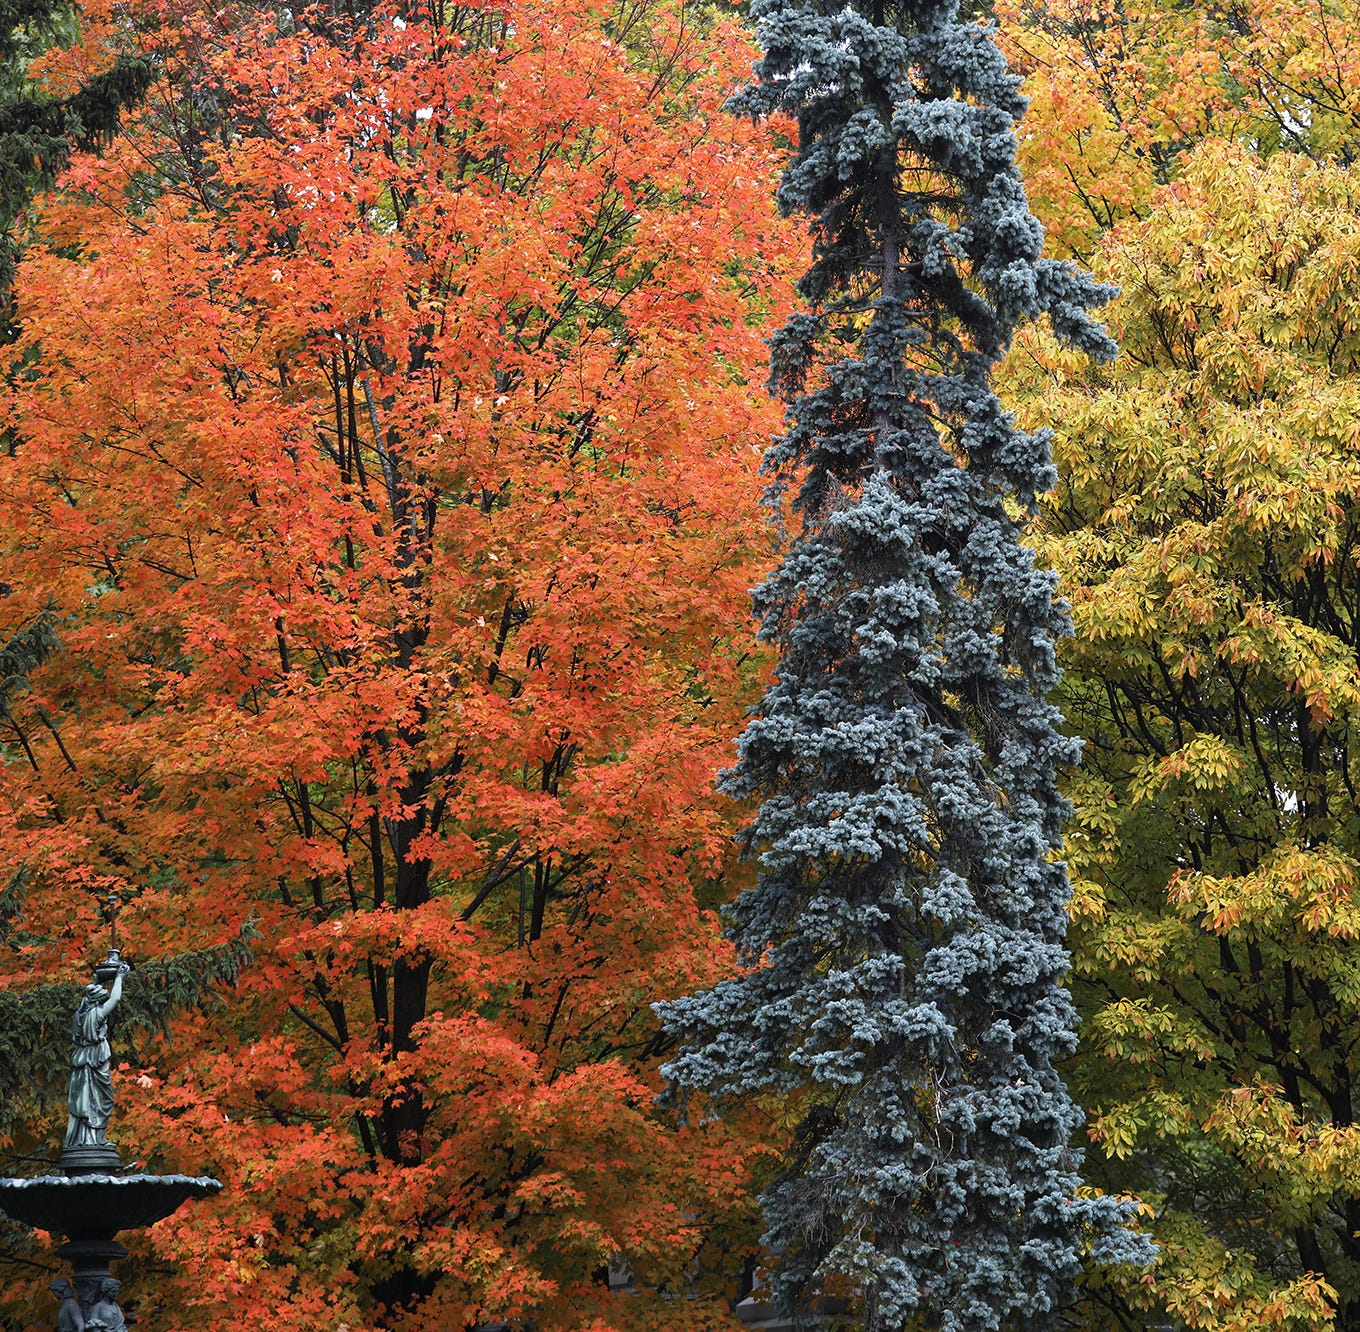 Peak and near-peak: Where is the best fall foliage this weekend?